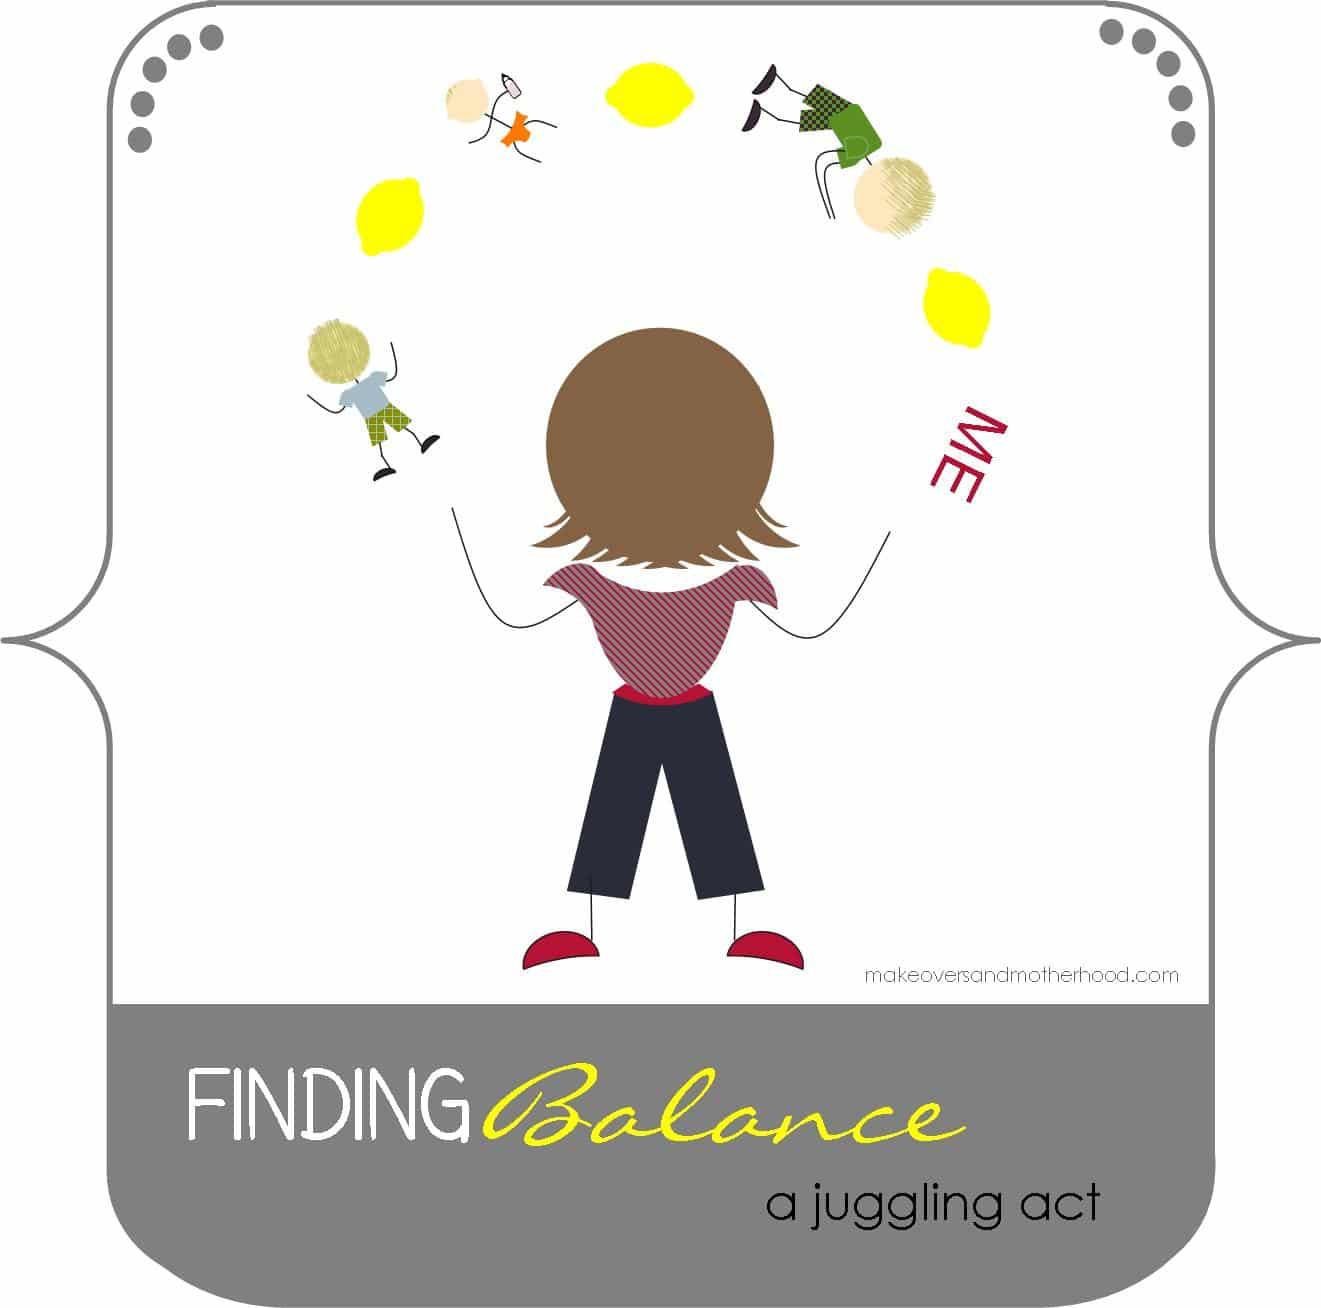 Finding Balance – a juggling act